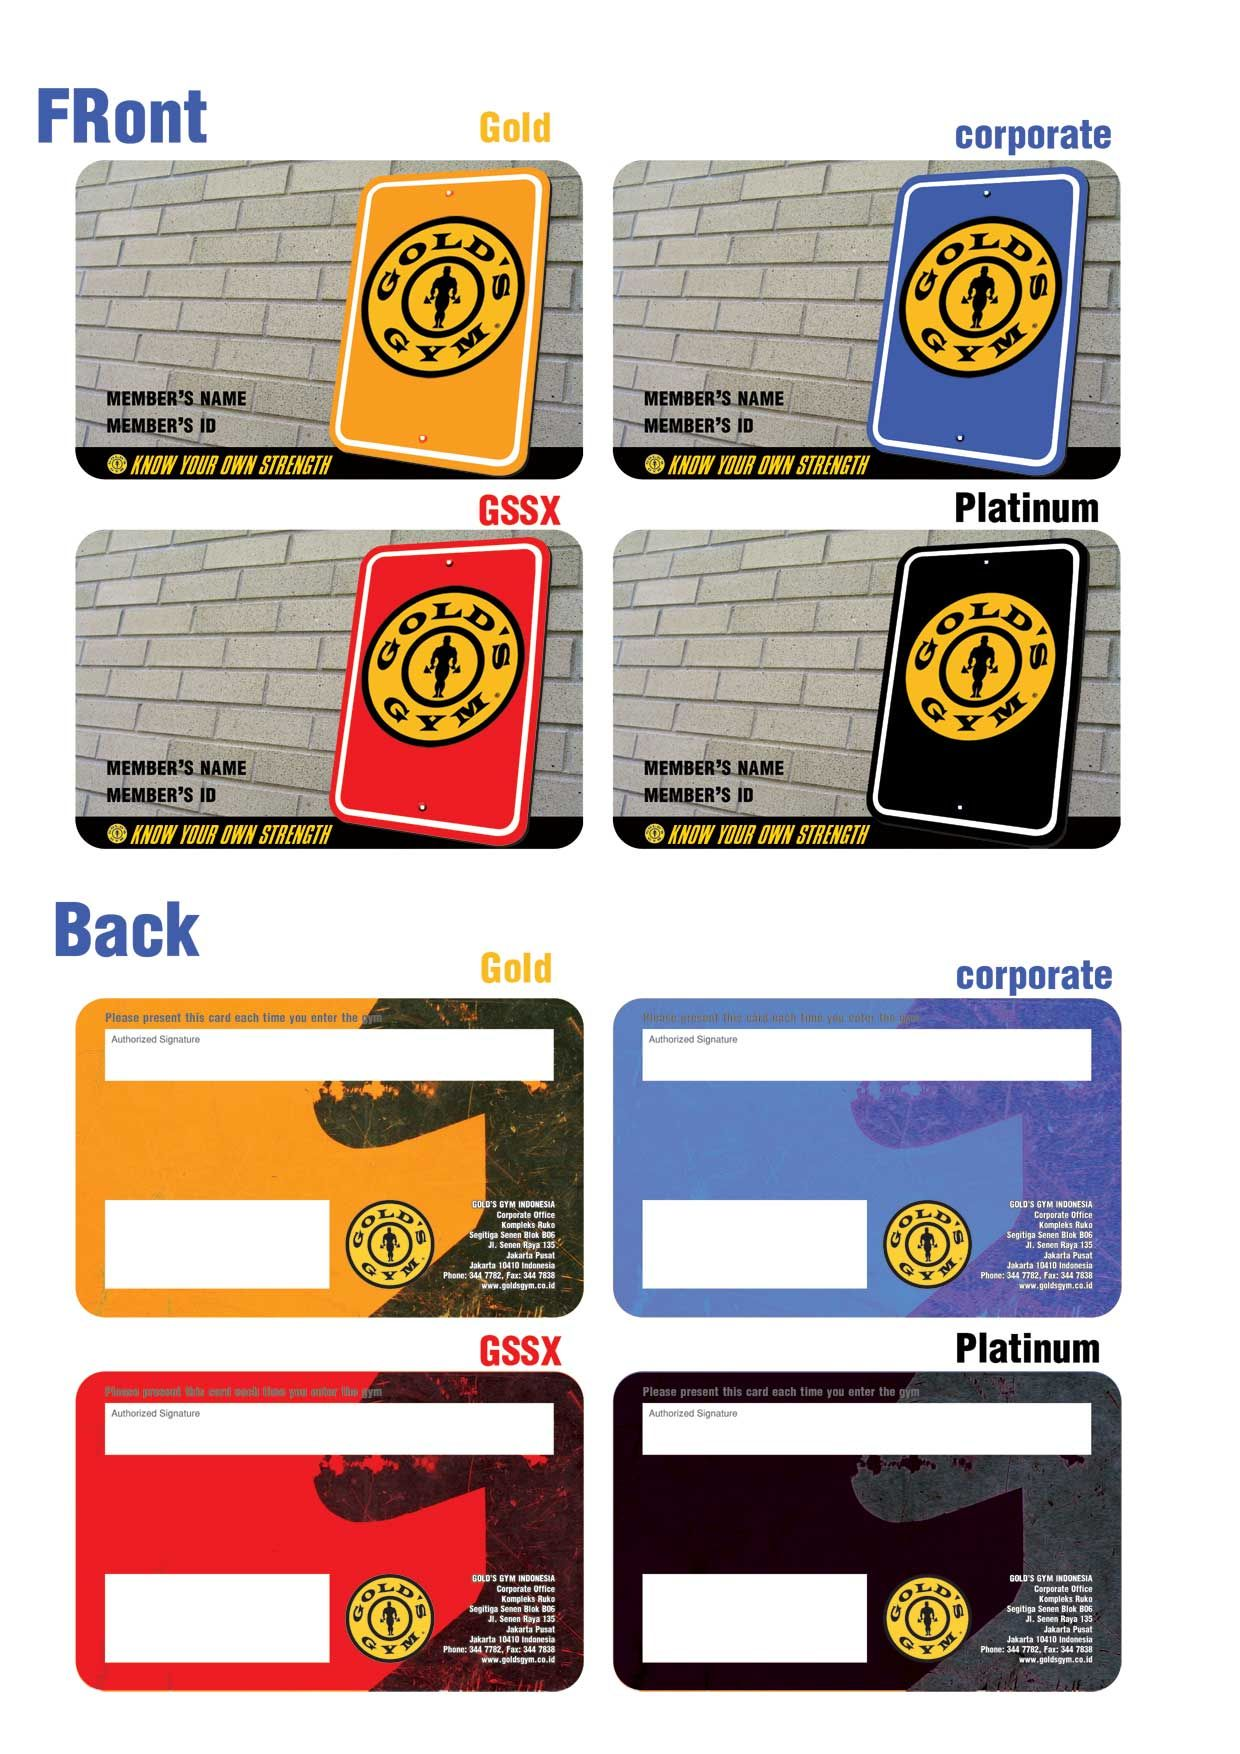 Gold gym membership card | G I F T S | Pinterest